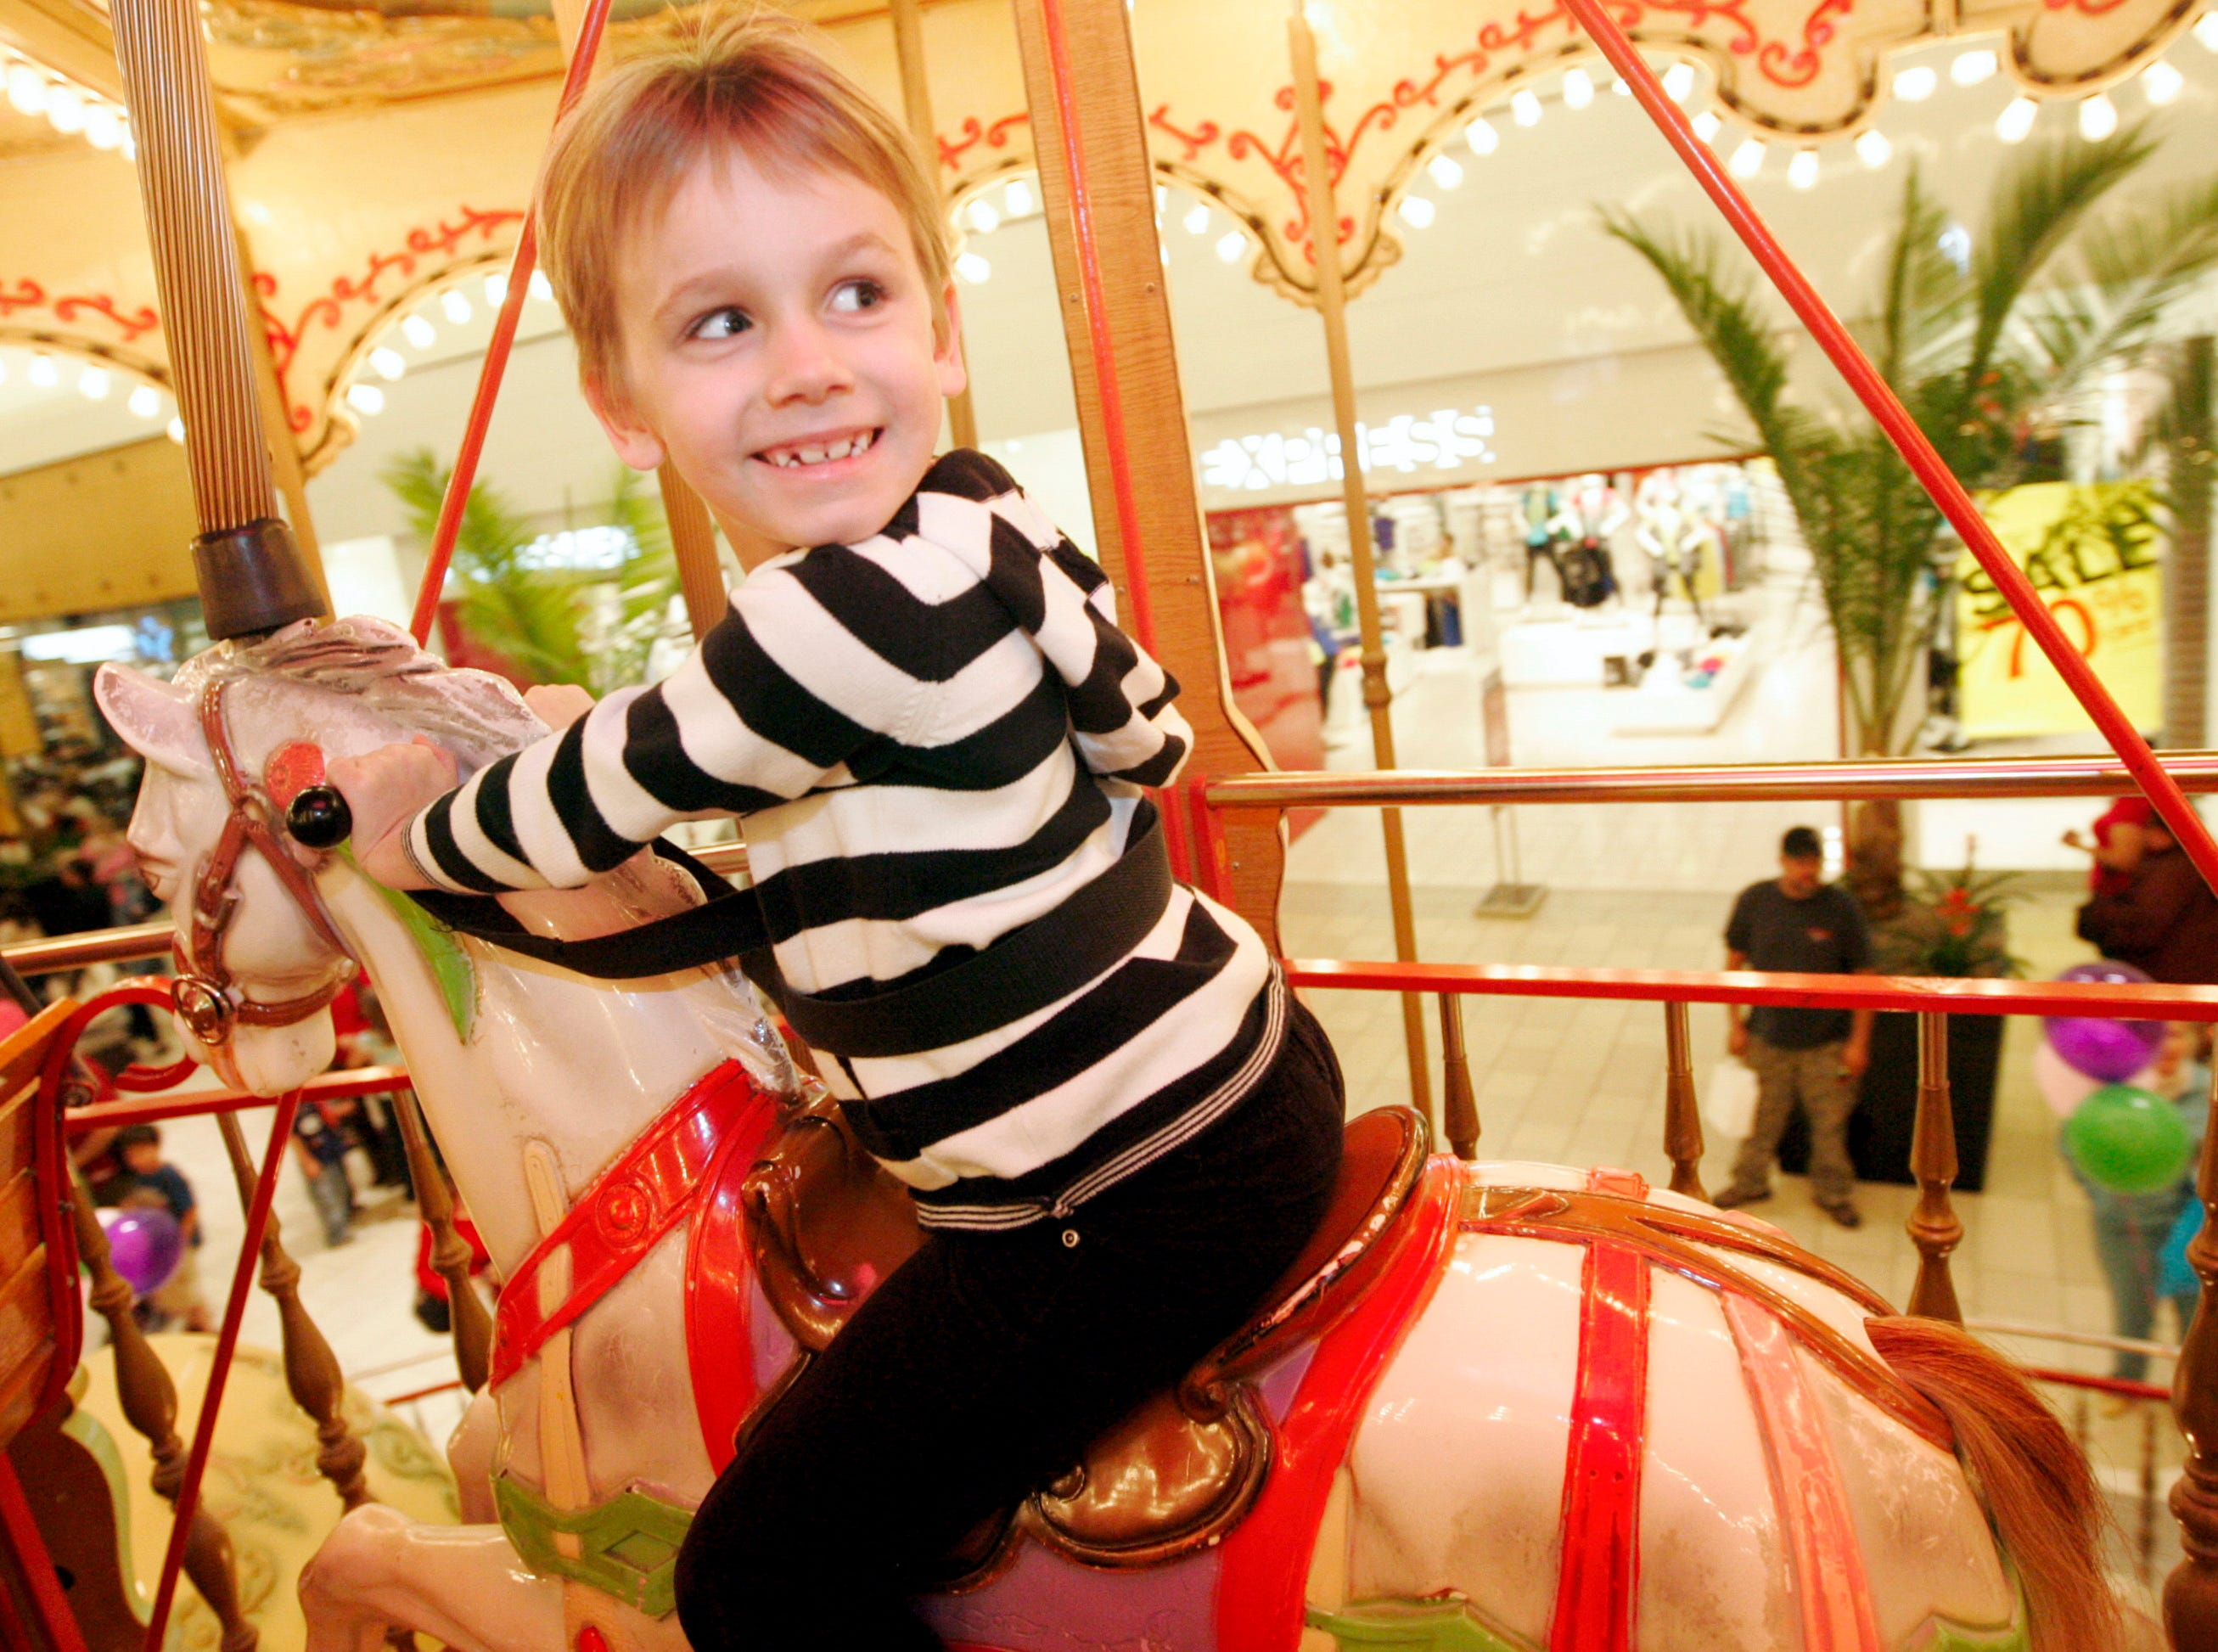 Angelica Fritz, 6 of Corpus Christi, looks back at her grandmother as she and her siblings take a ride on upper deck of the carousel Saturday, Jan. 31, 2009 at La Palmera mall in Corpus Christi.